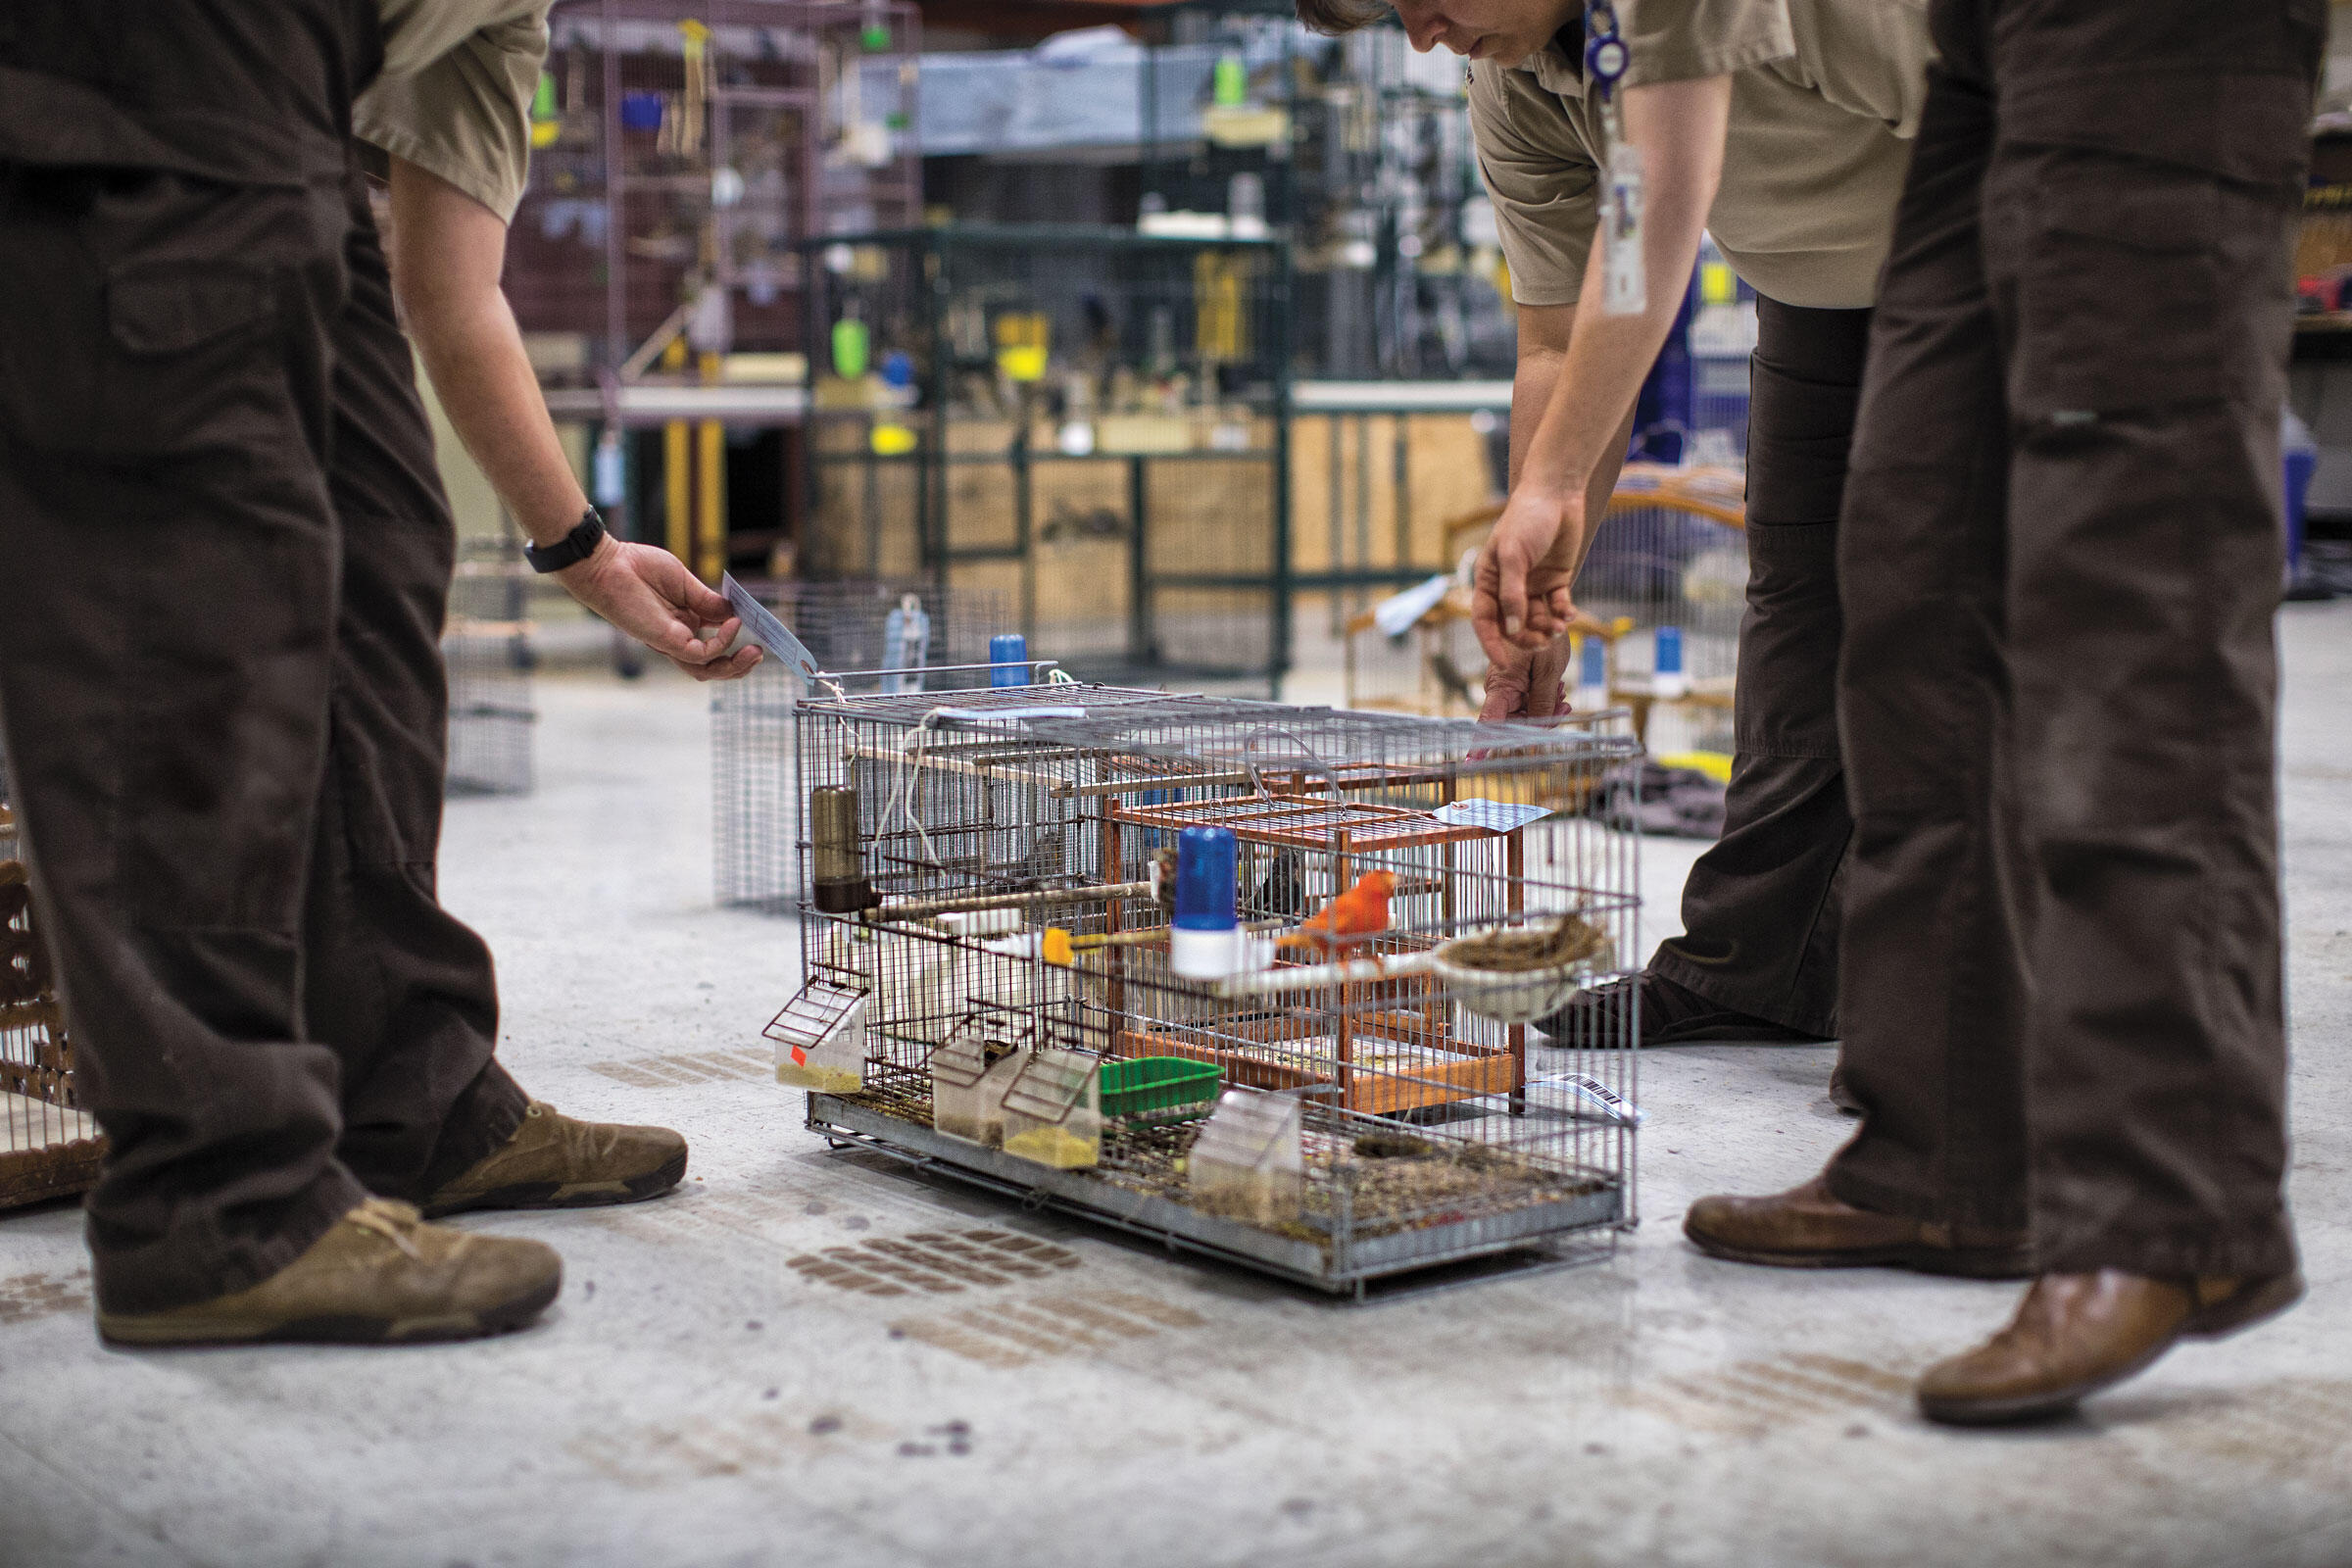 Wildlife agents working undercover seized more than 400 birds from traffickers in the Miami area during the course of Operation Ornery Birds. The birds received clean cages and care until the healthiest could be released back into the wild. Karine Aigner